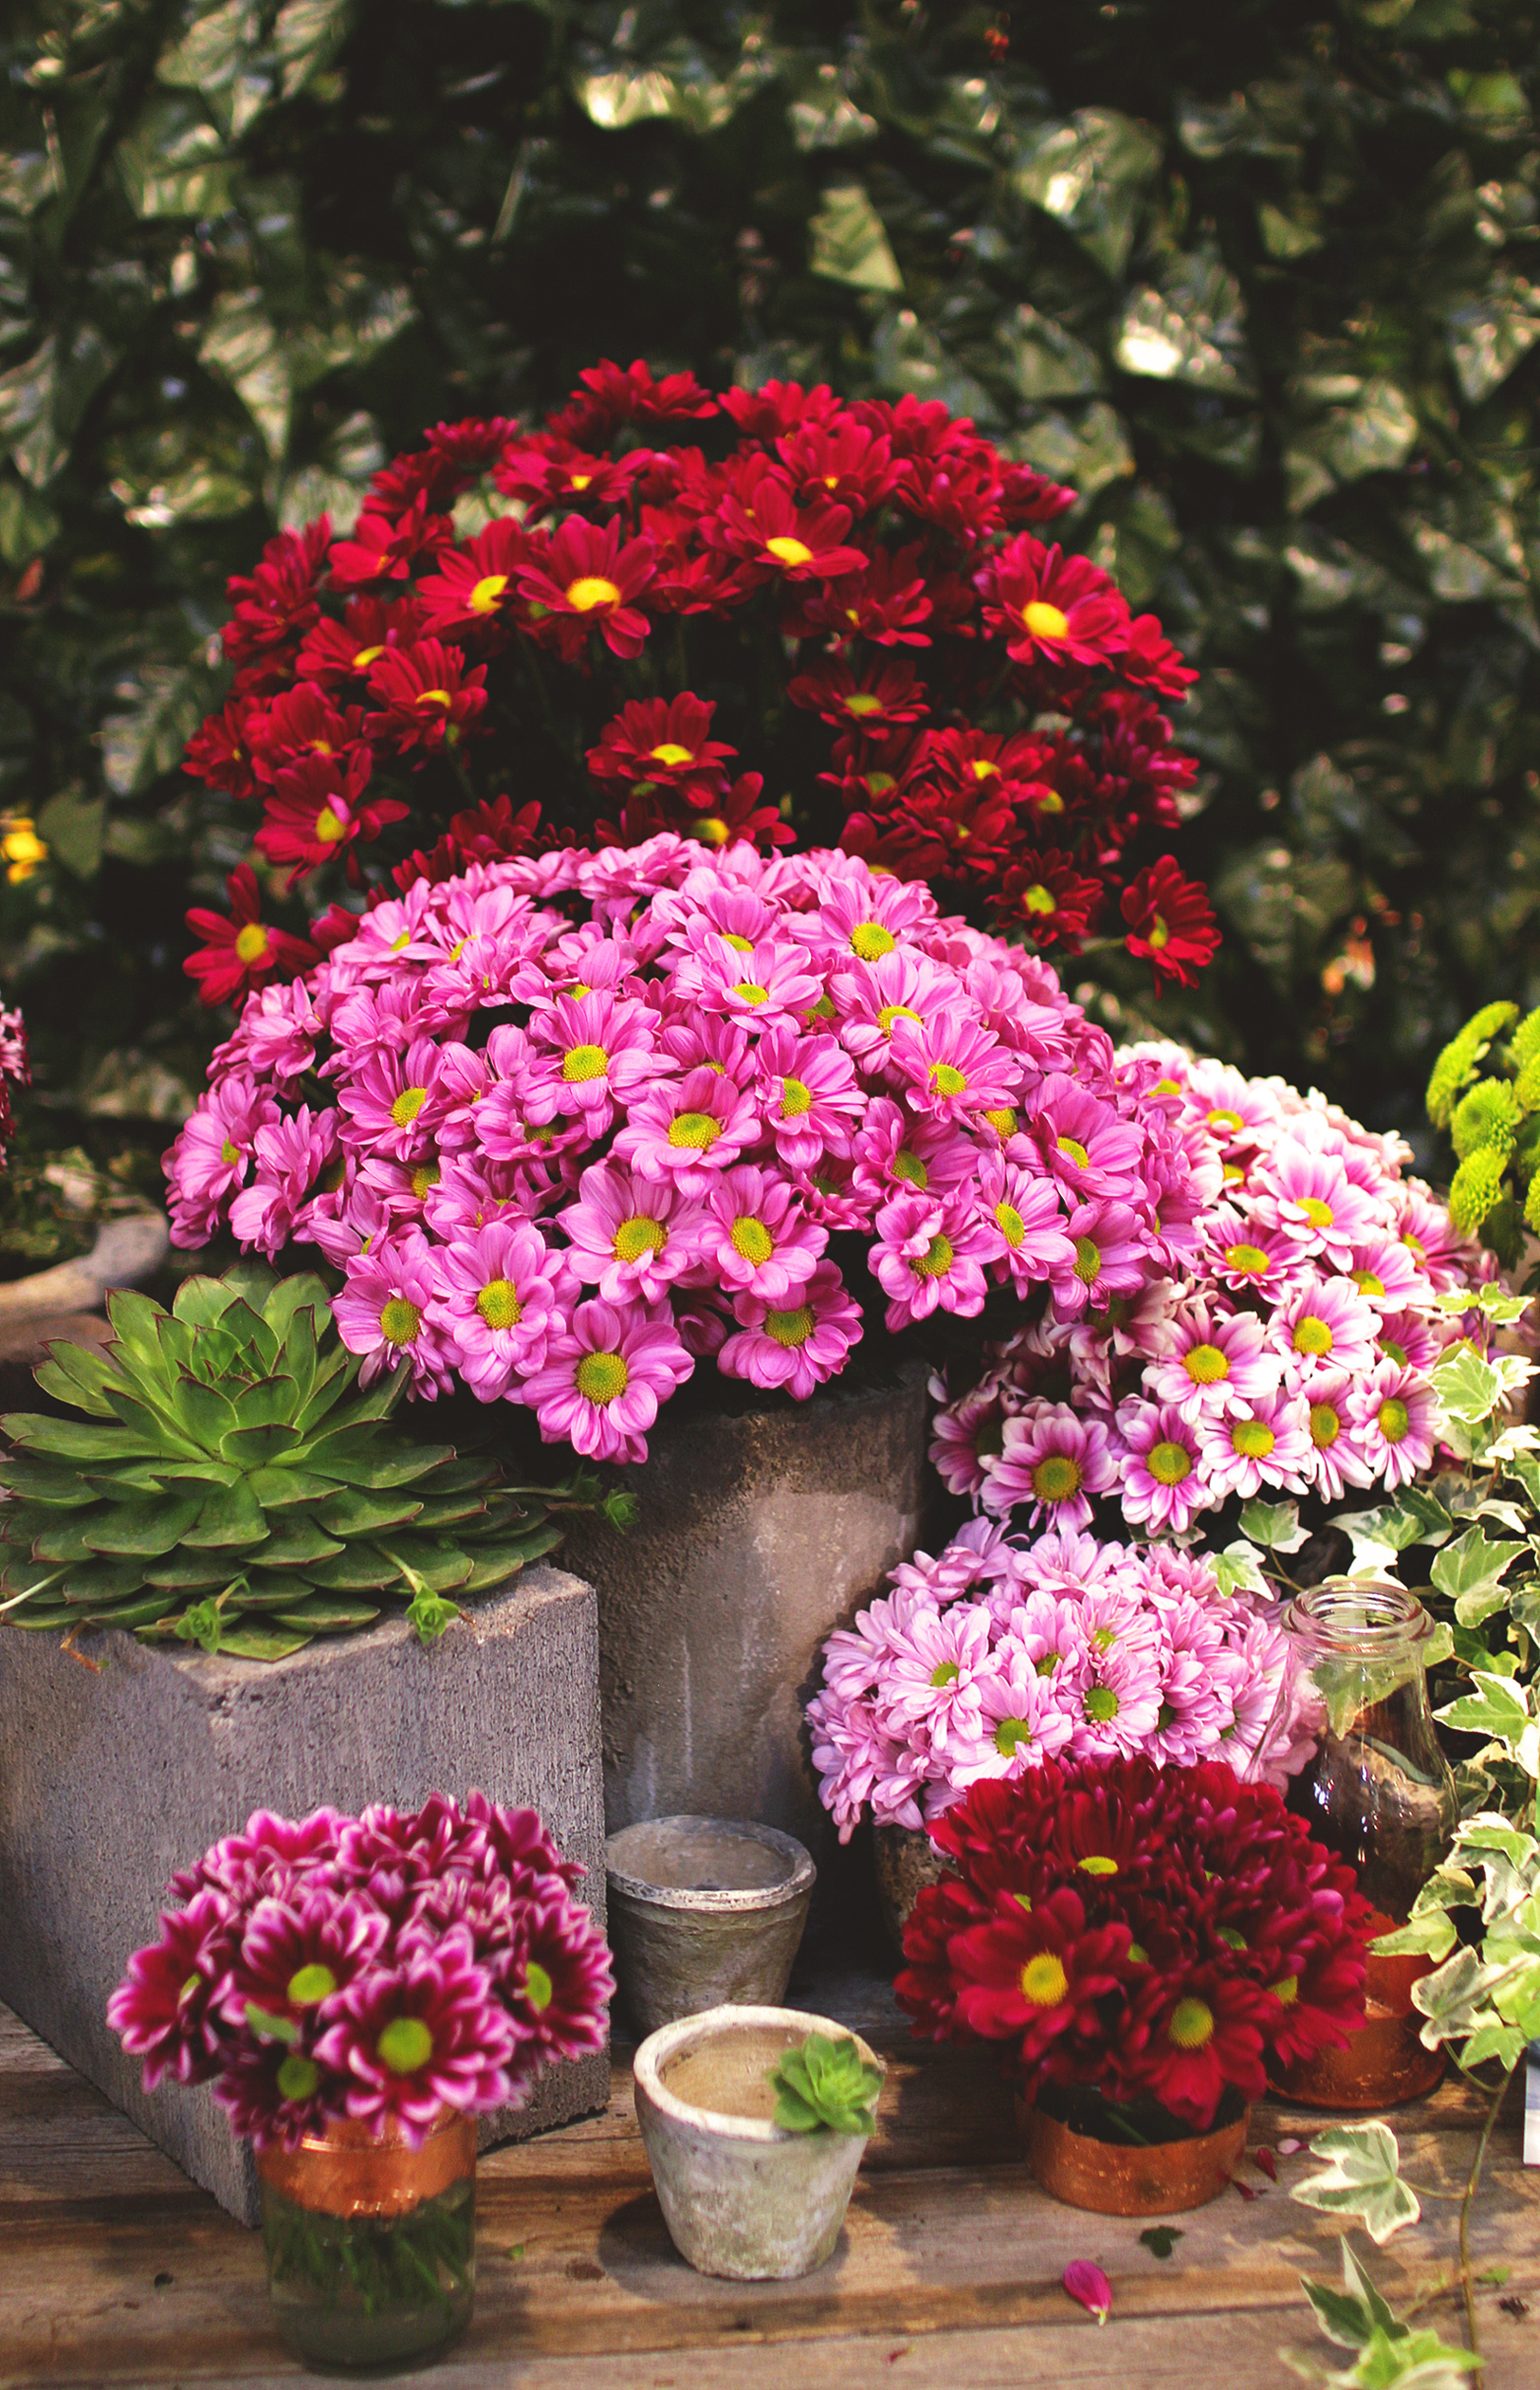 Chrysanthemums in pots in autumn (Thinkstock/PA)